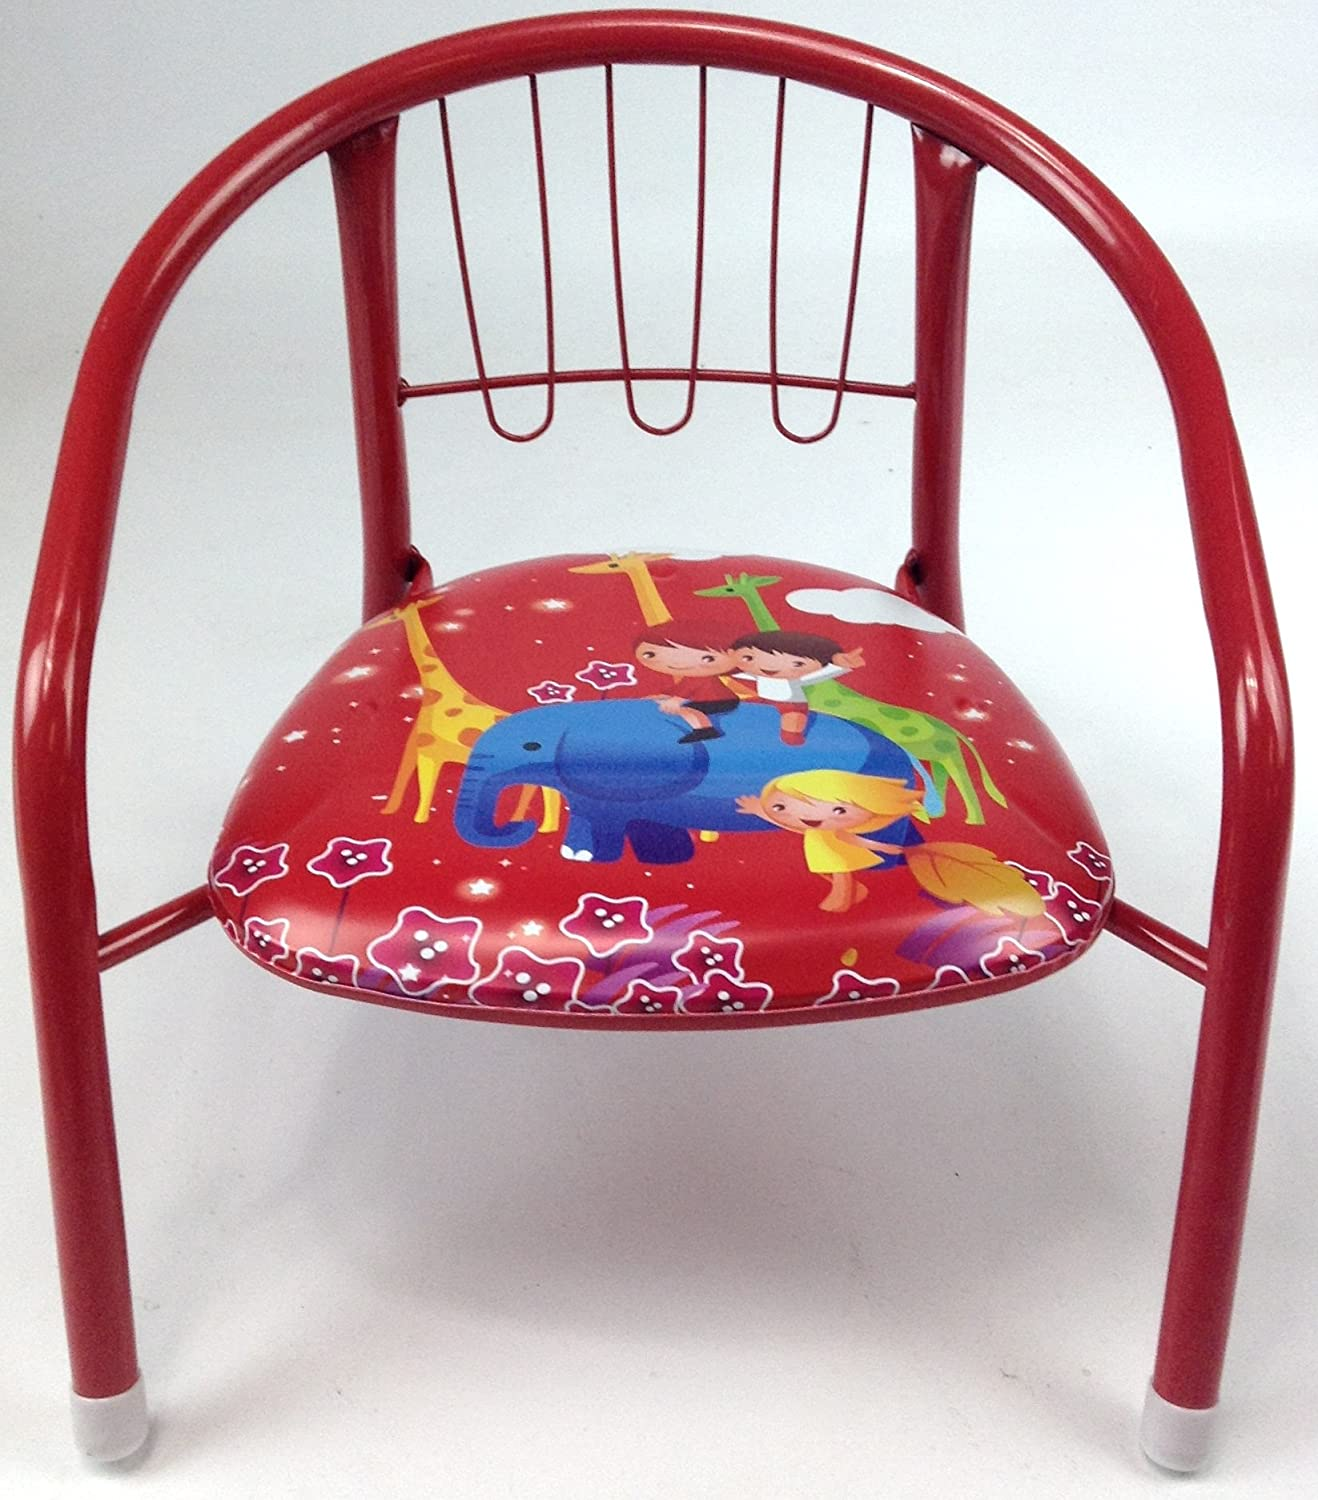 Childrens Squeaky Chair Metal Frame Various Colours Designs Sturdy